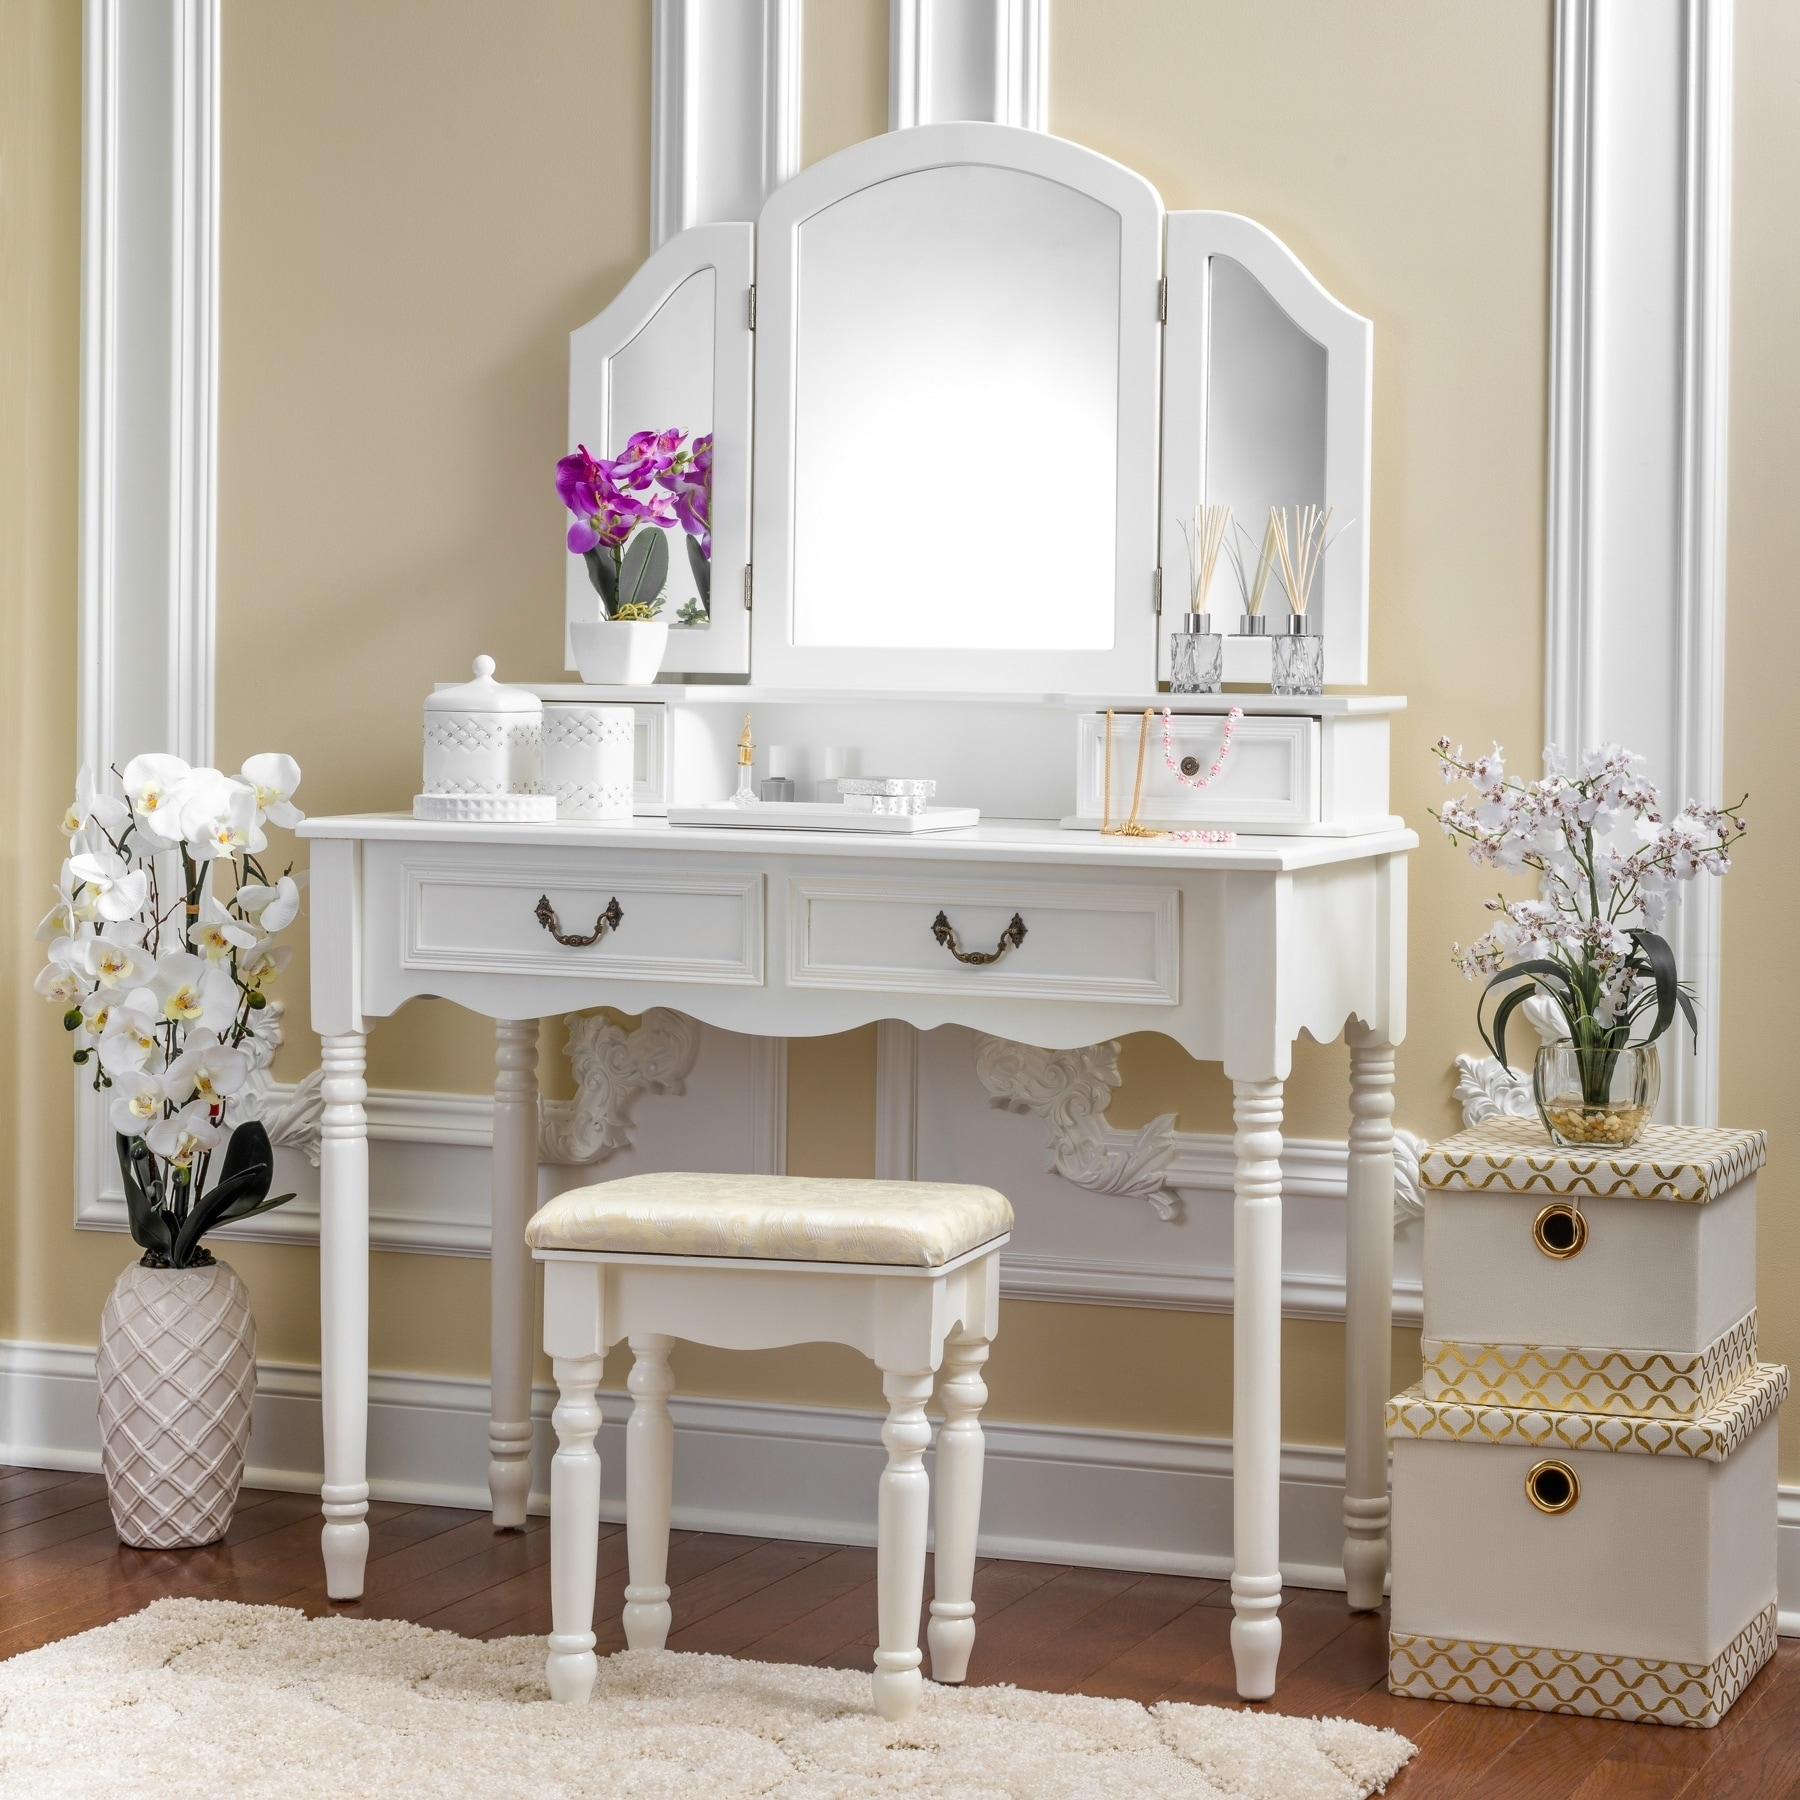 style drawer drawers with white mirror desk ladies louis table dressing french